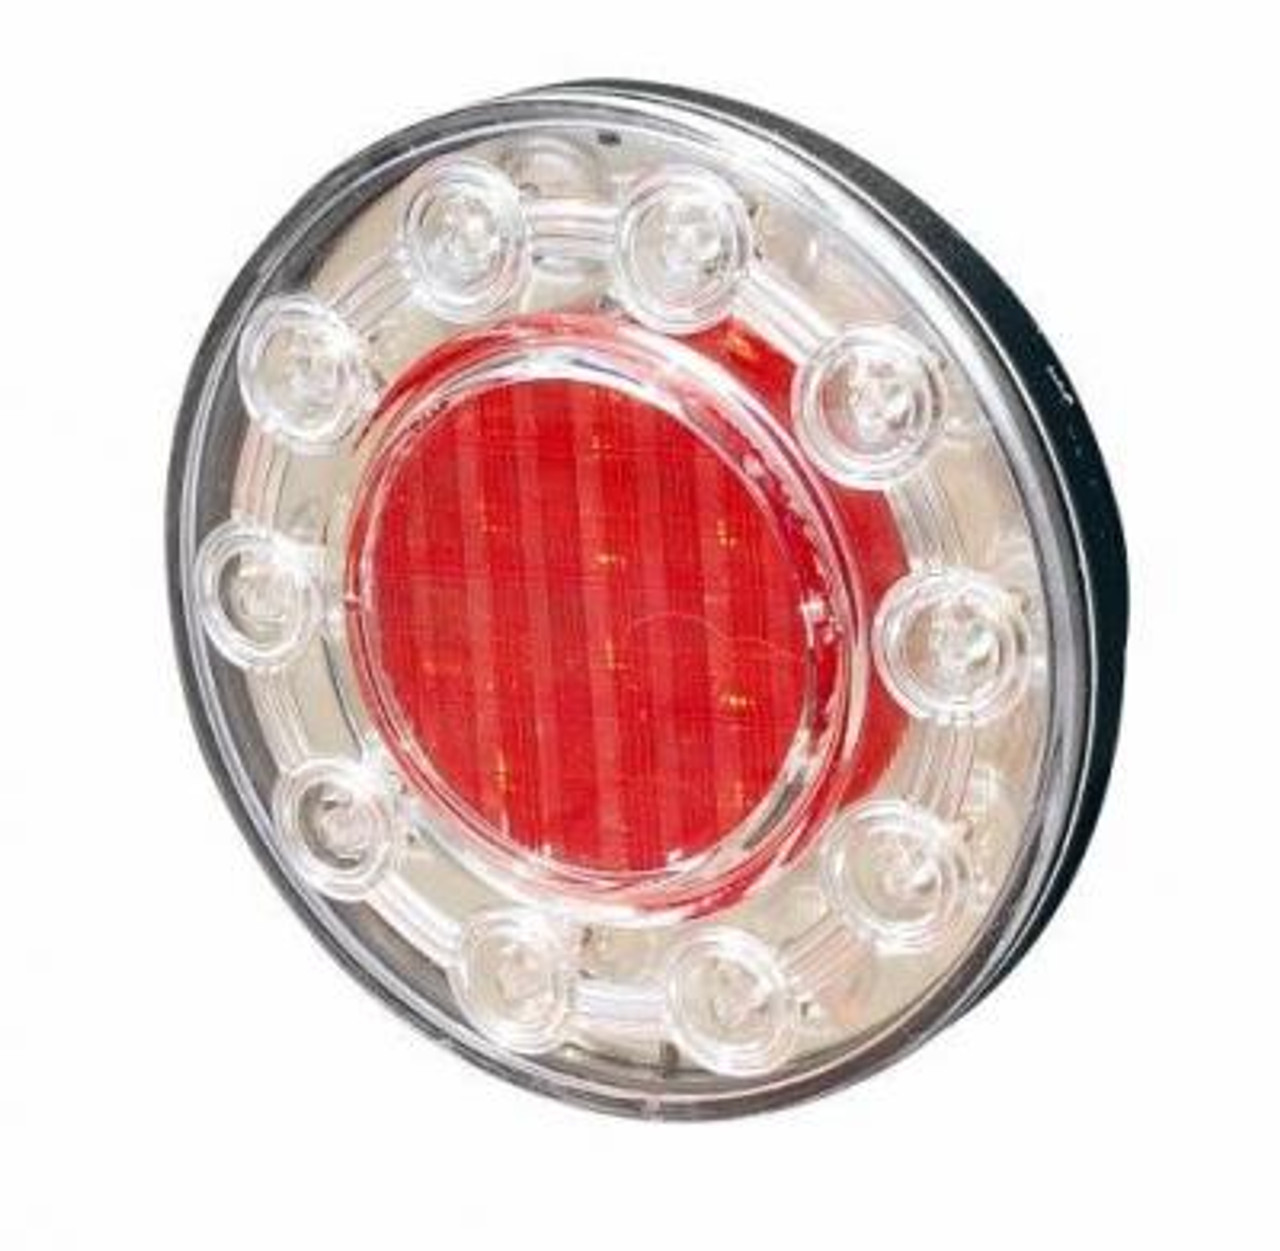 100mm Round Stop, Tail Light. LED's are Red in the inner and outer of the light.